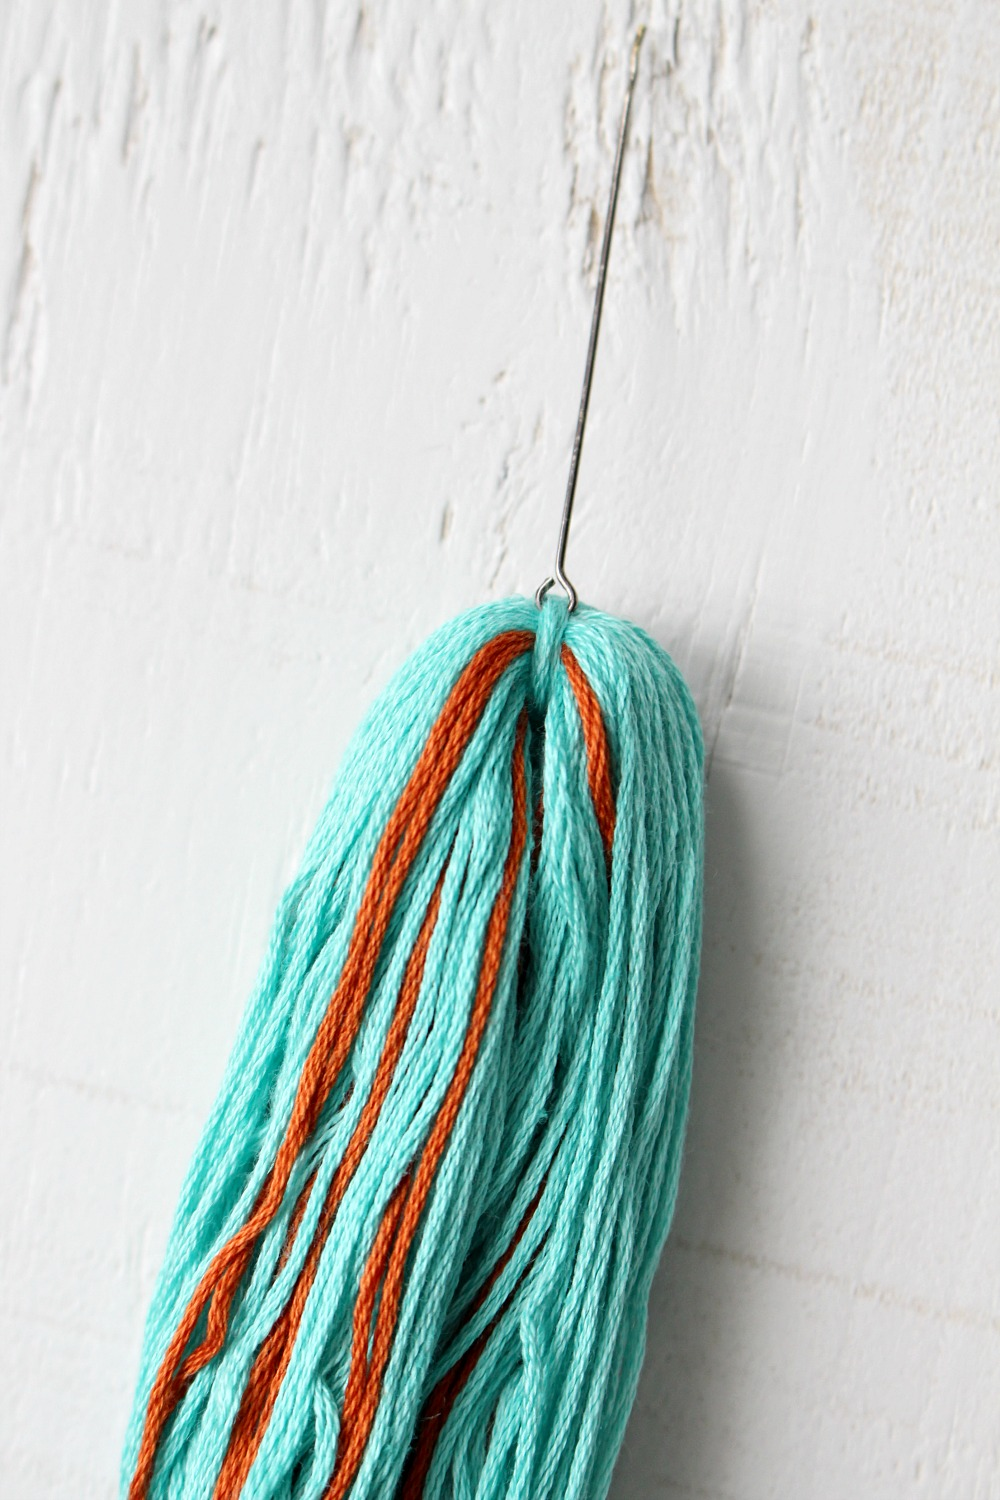 Things to Make with Embroidery Floss